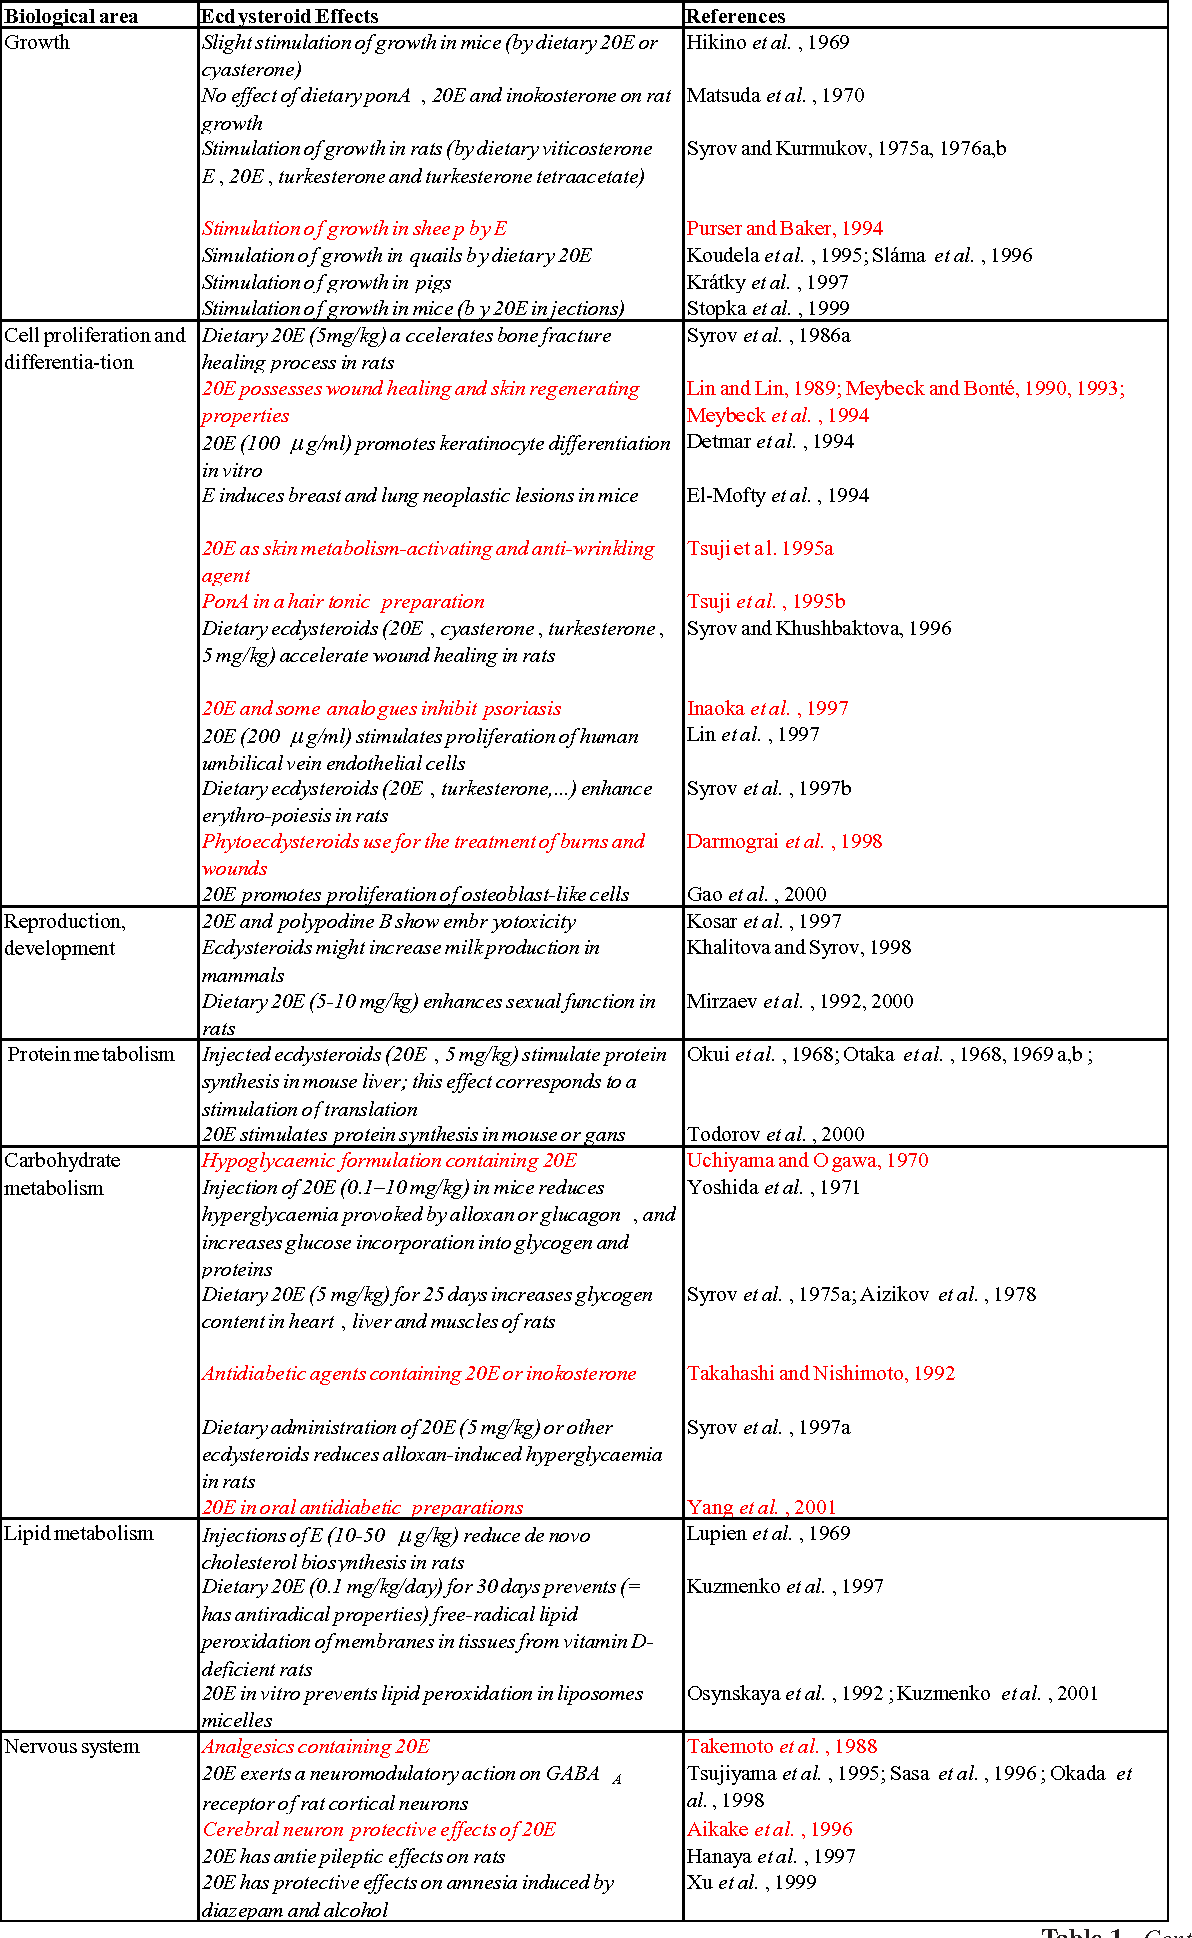 Table 2 from Practical uses for ecdysteroids in mammals